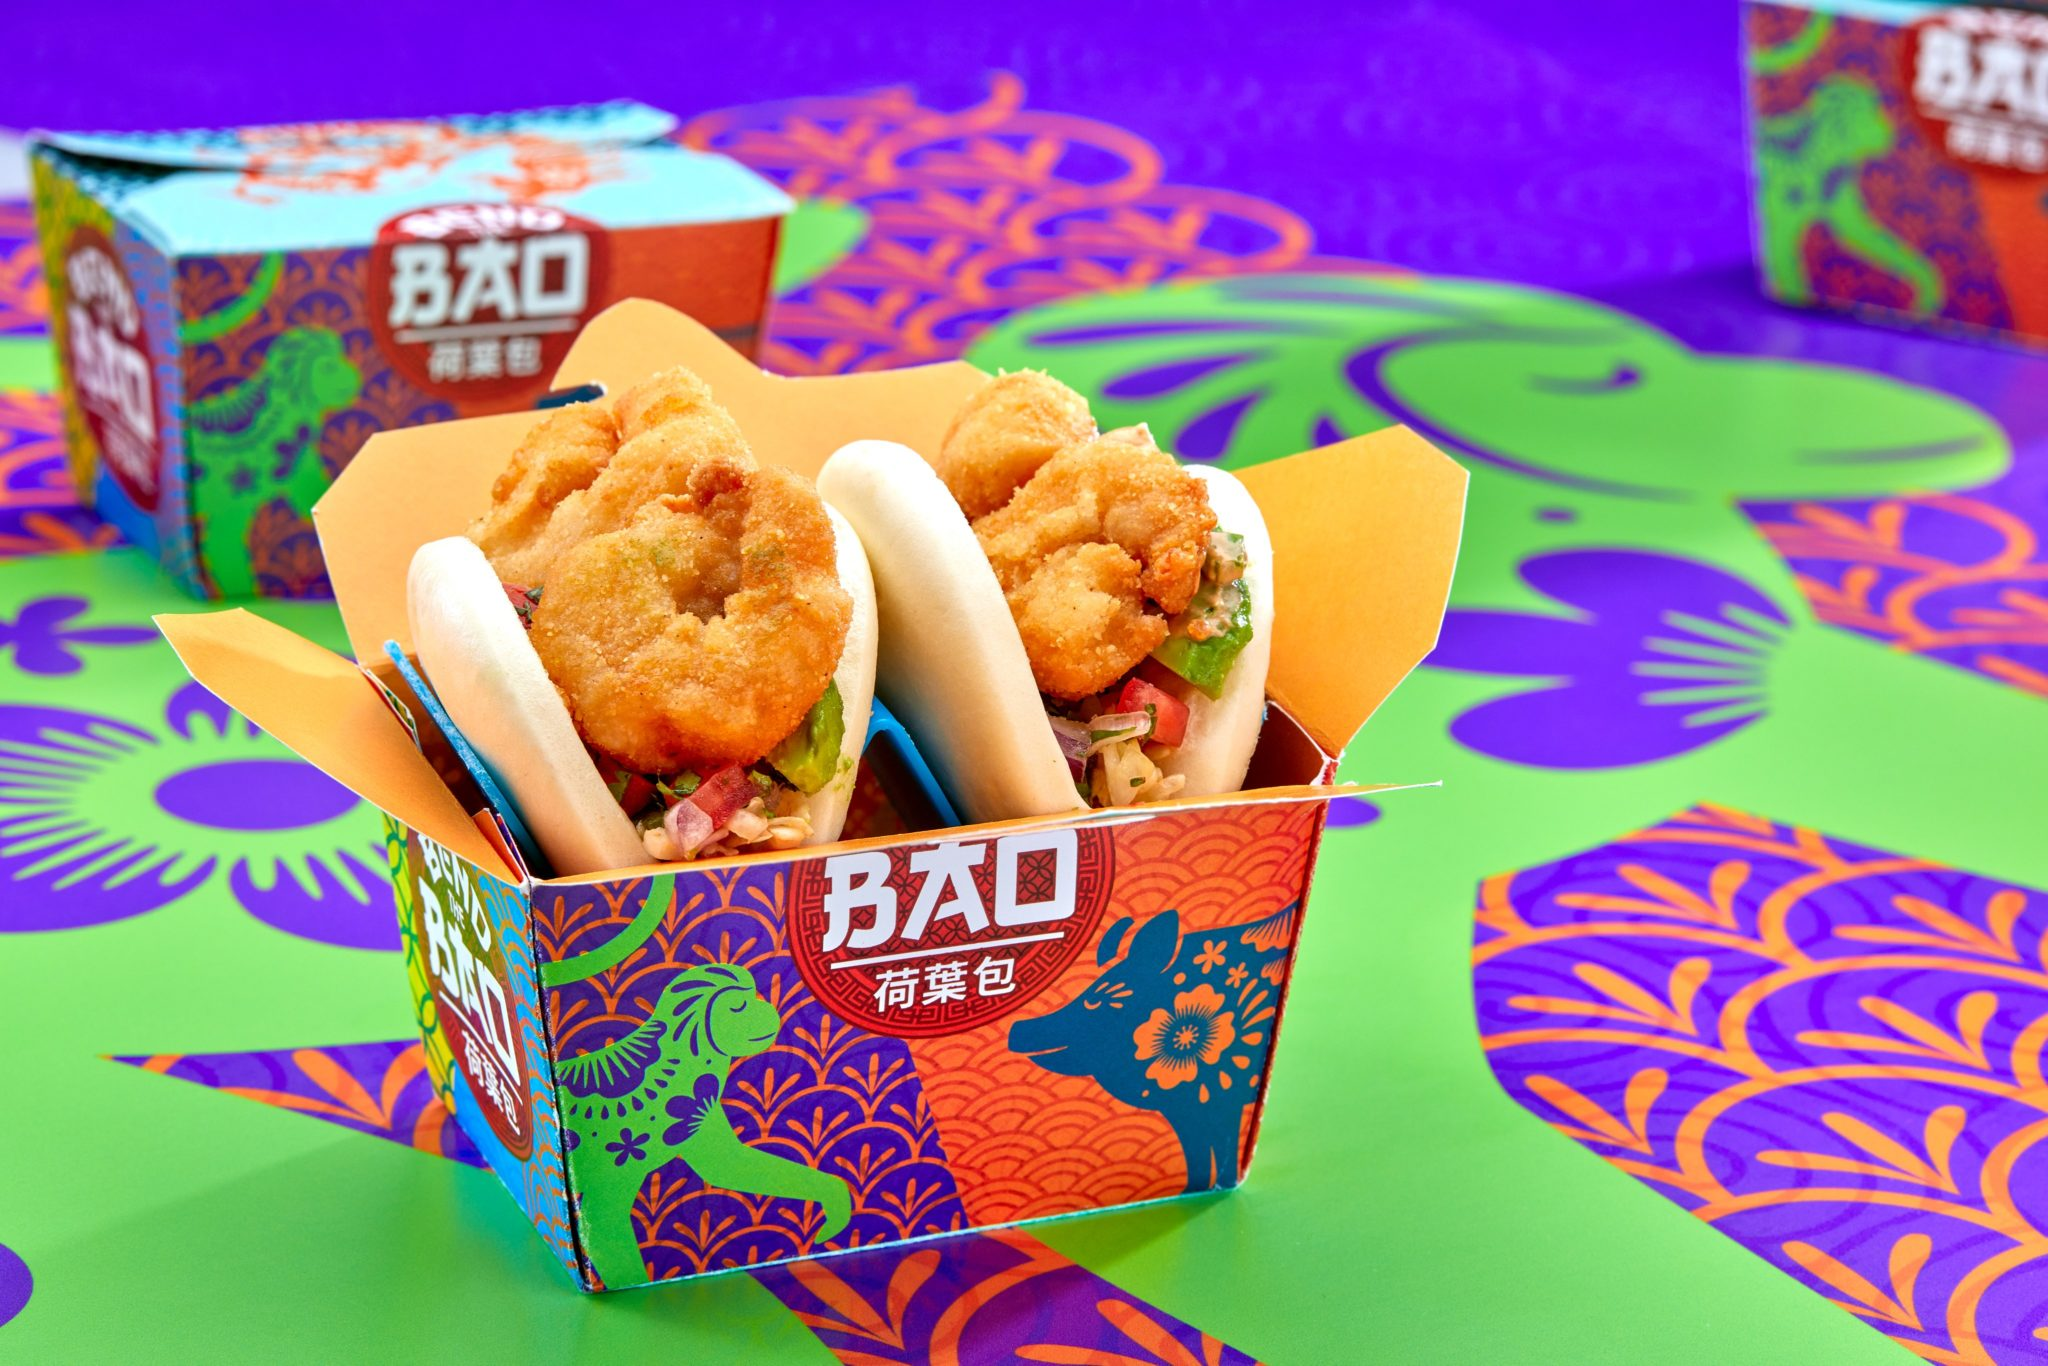 Bend The Bao Set to Open June 15th at Universal CityWalk at Universal Studios Orlando